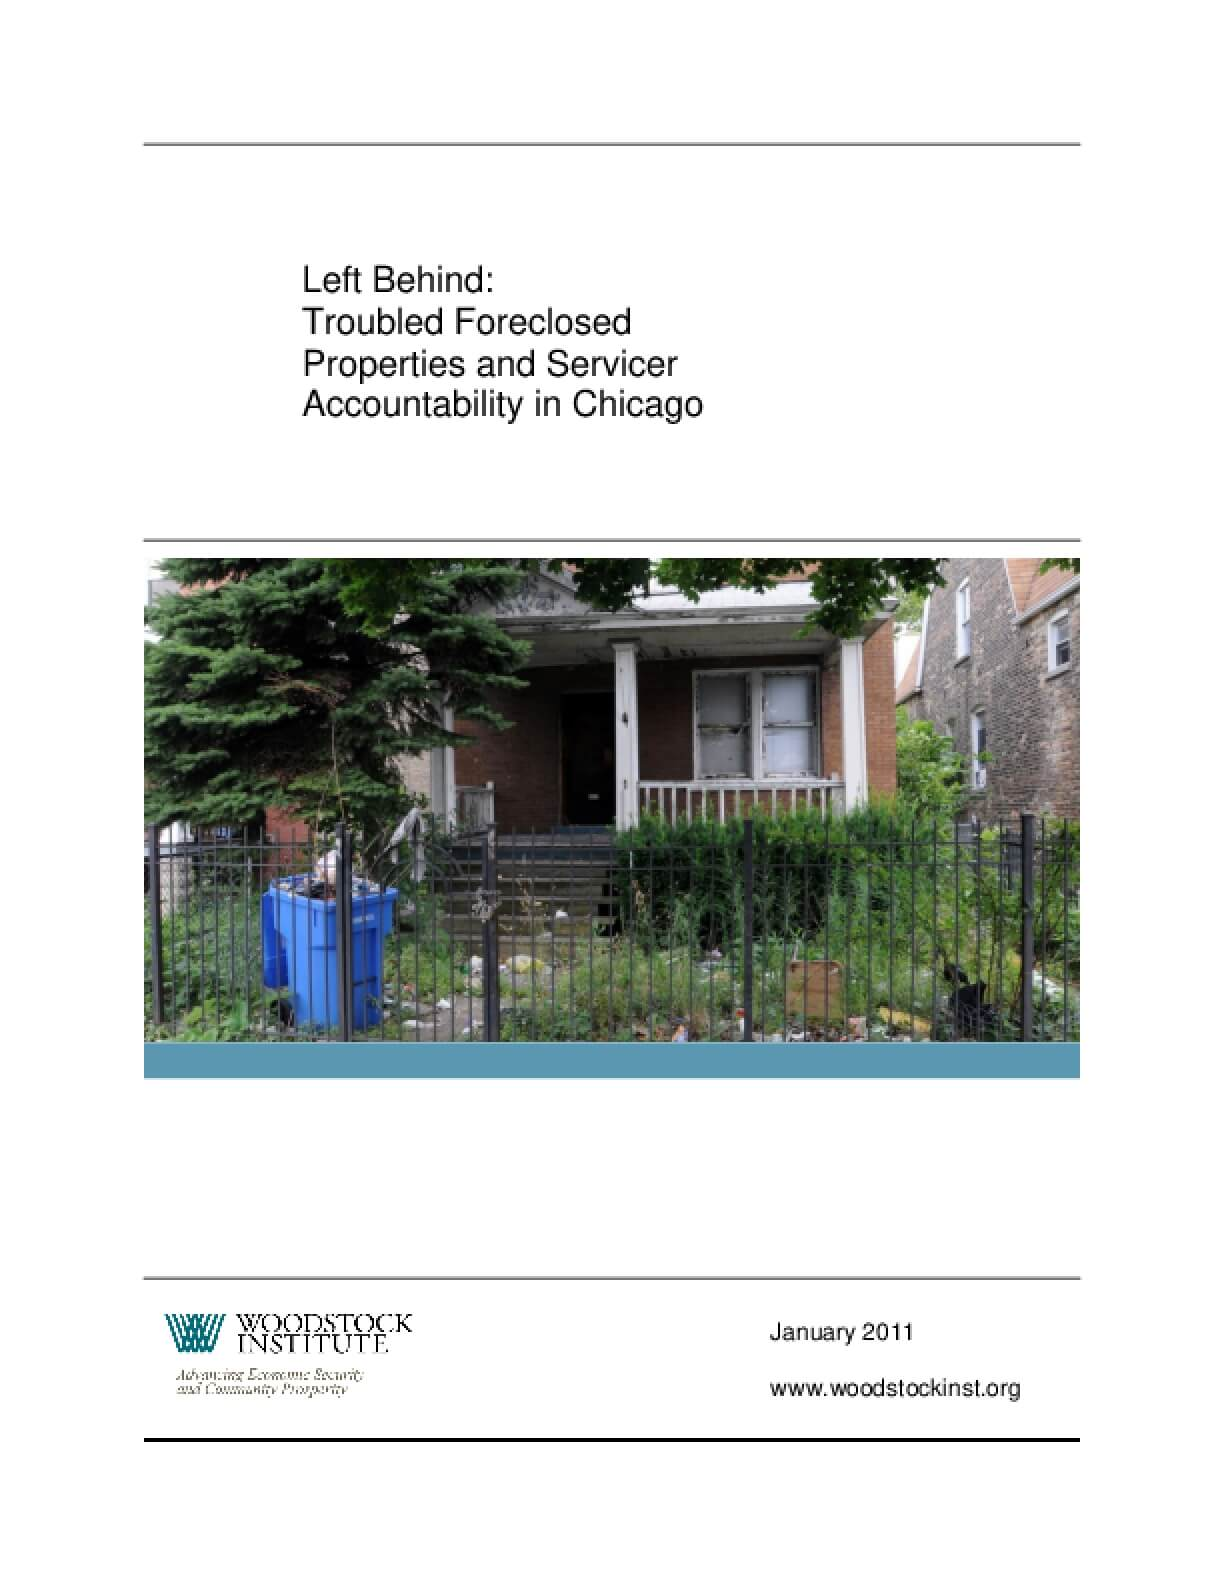 Left Behind: Troubled Foreclosed Properties and Servicer Accountability in Chicago